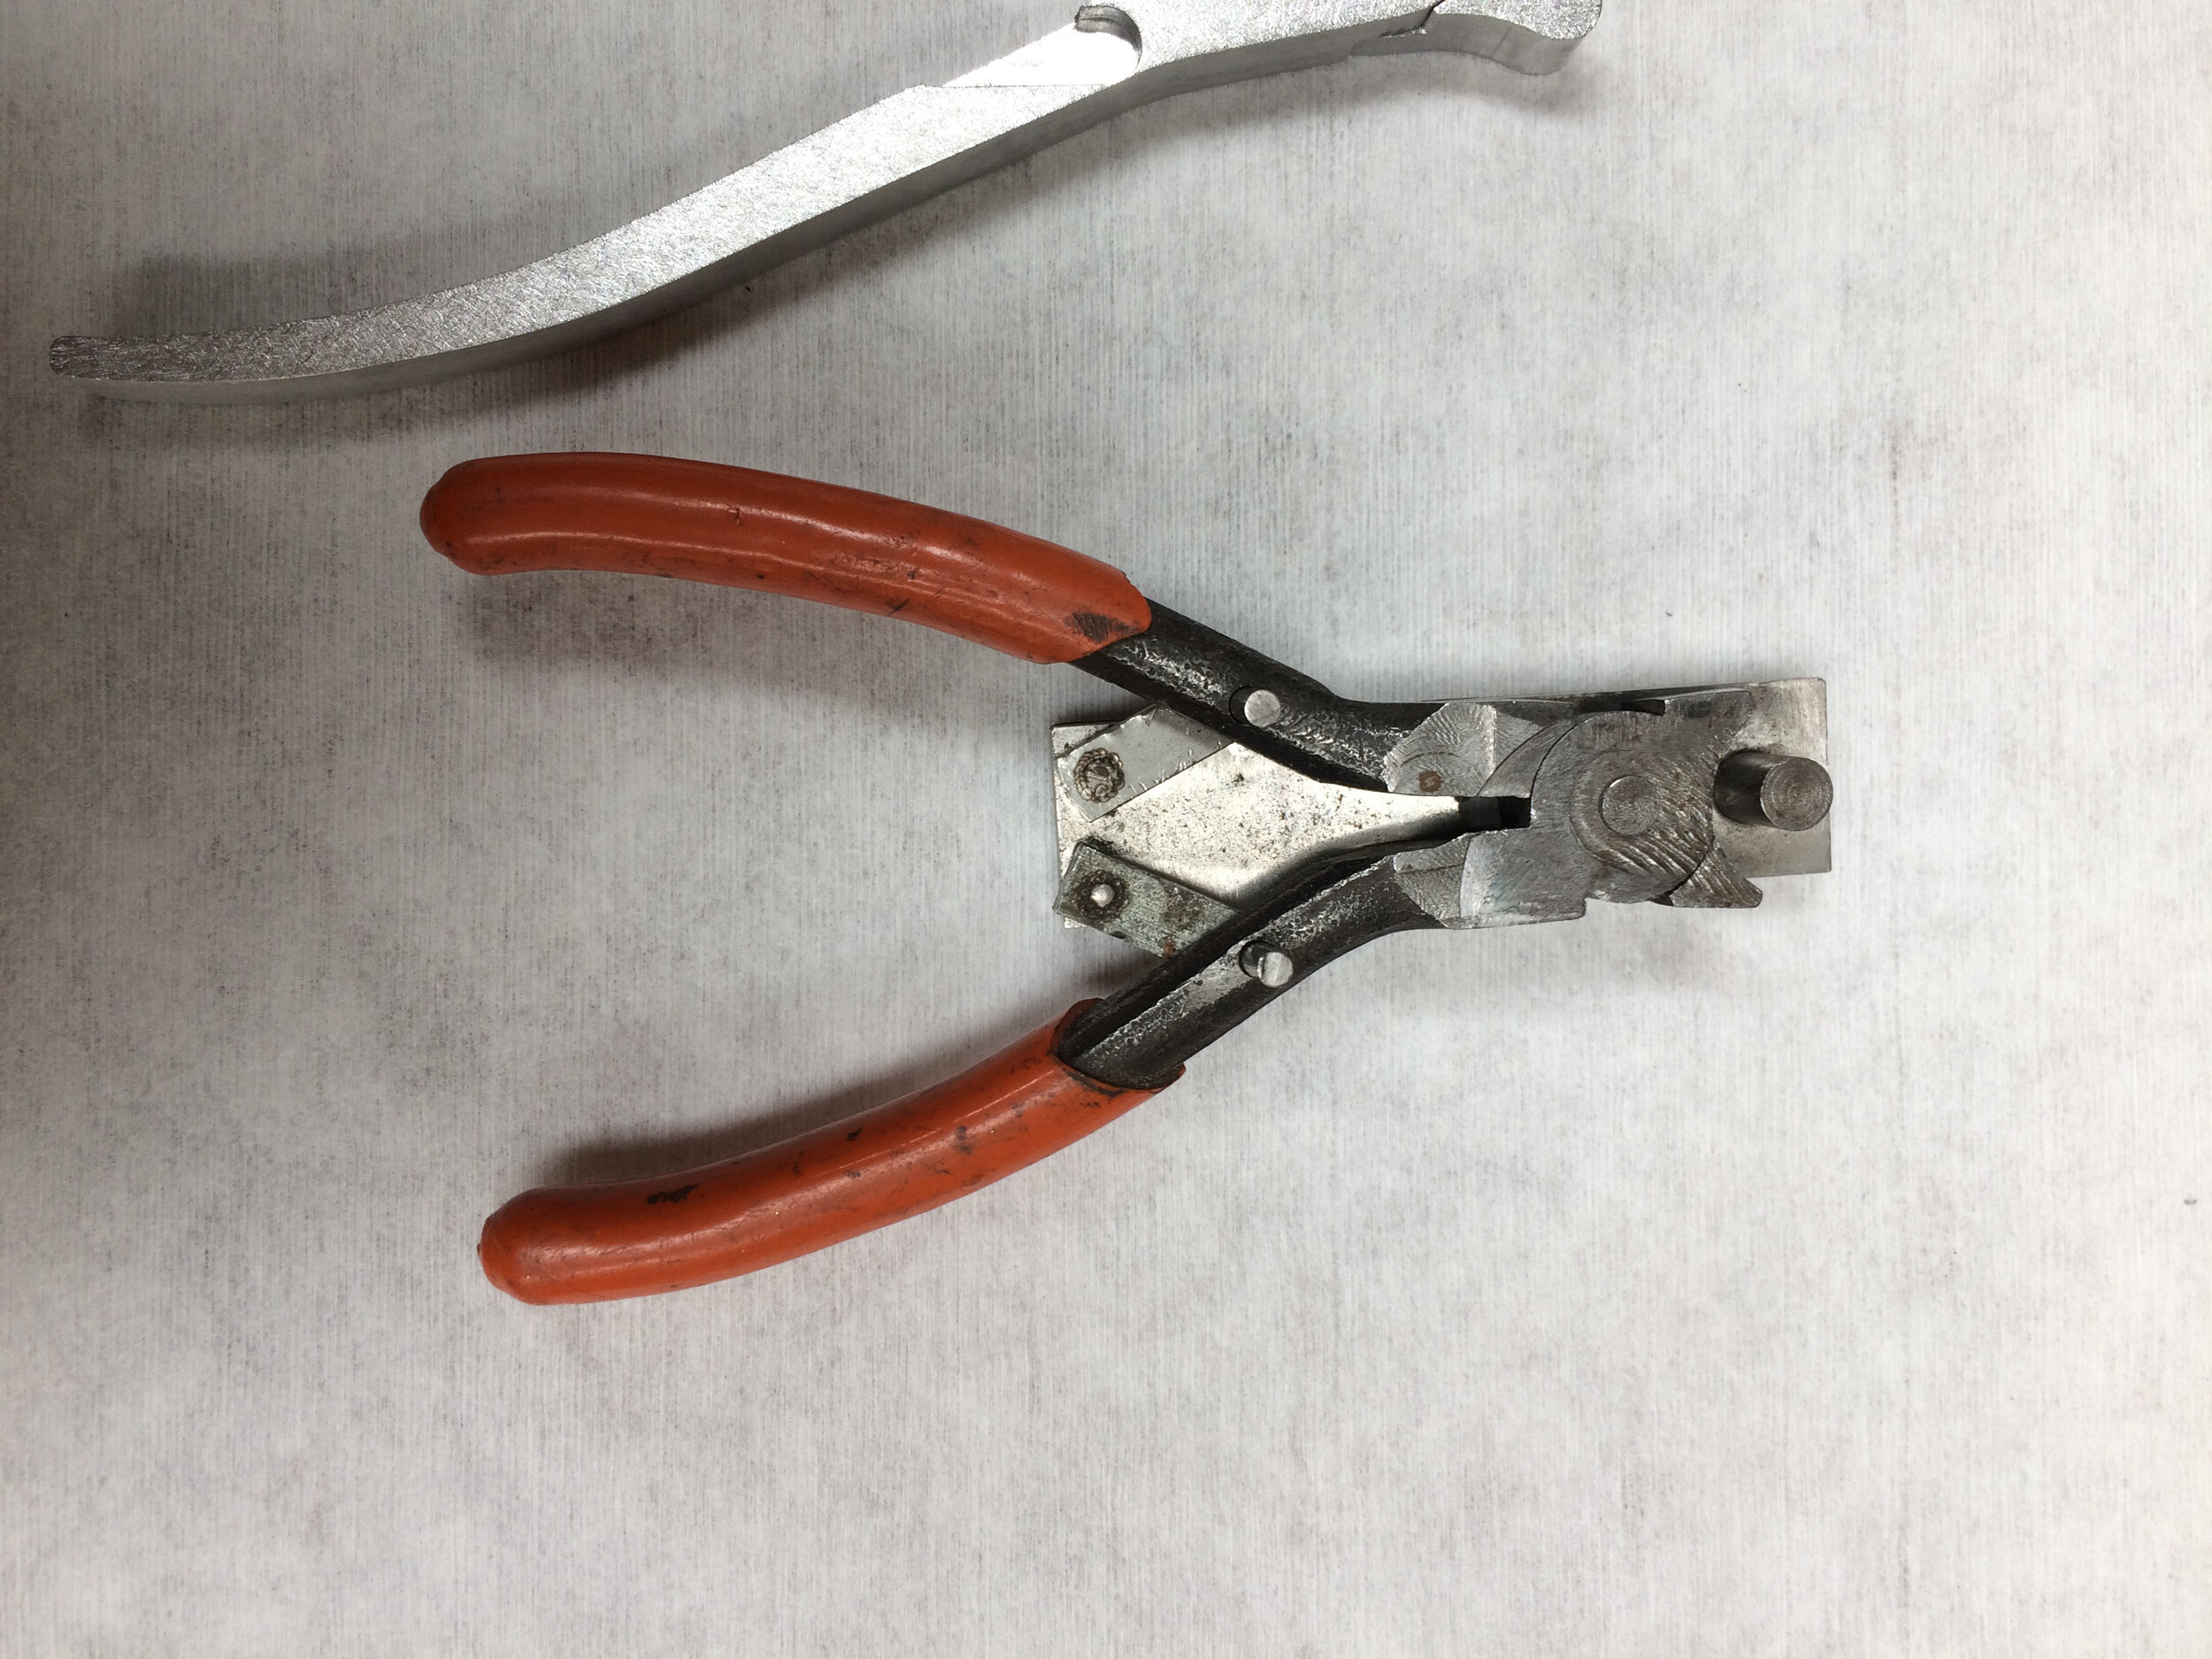 The inspiration was this converted plier